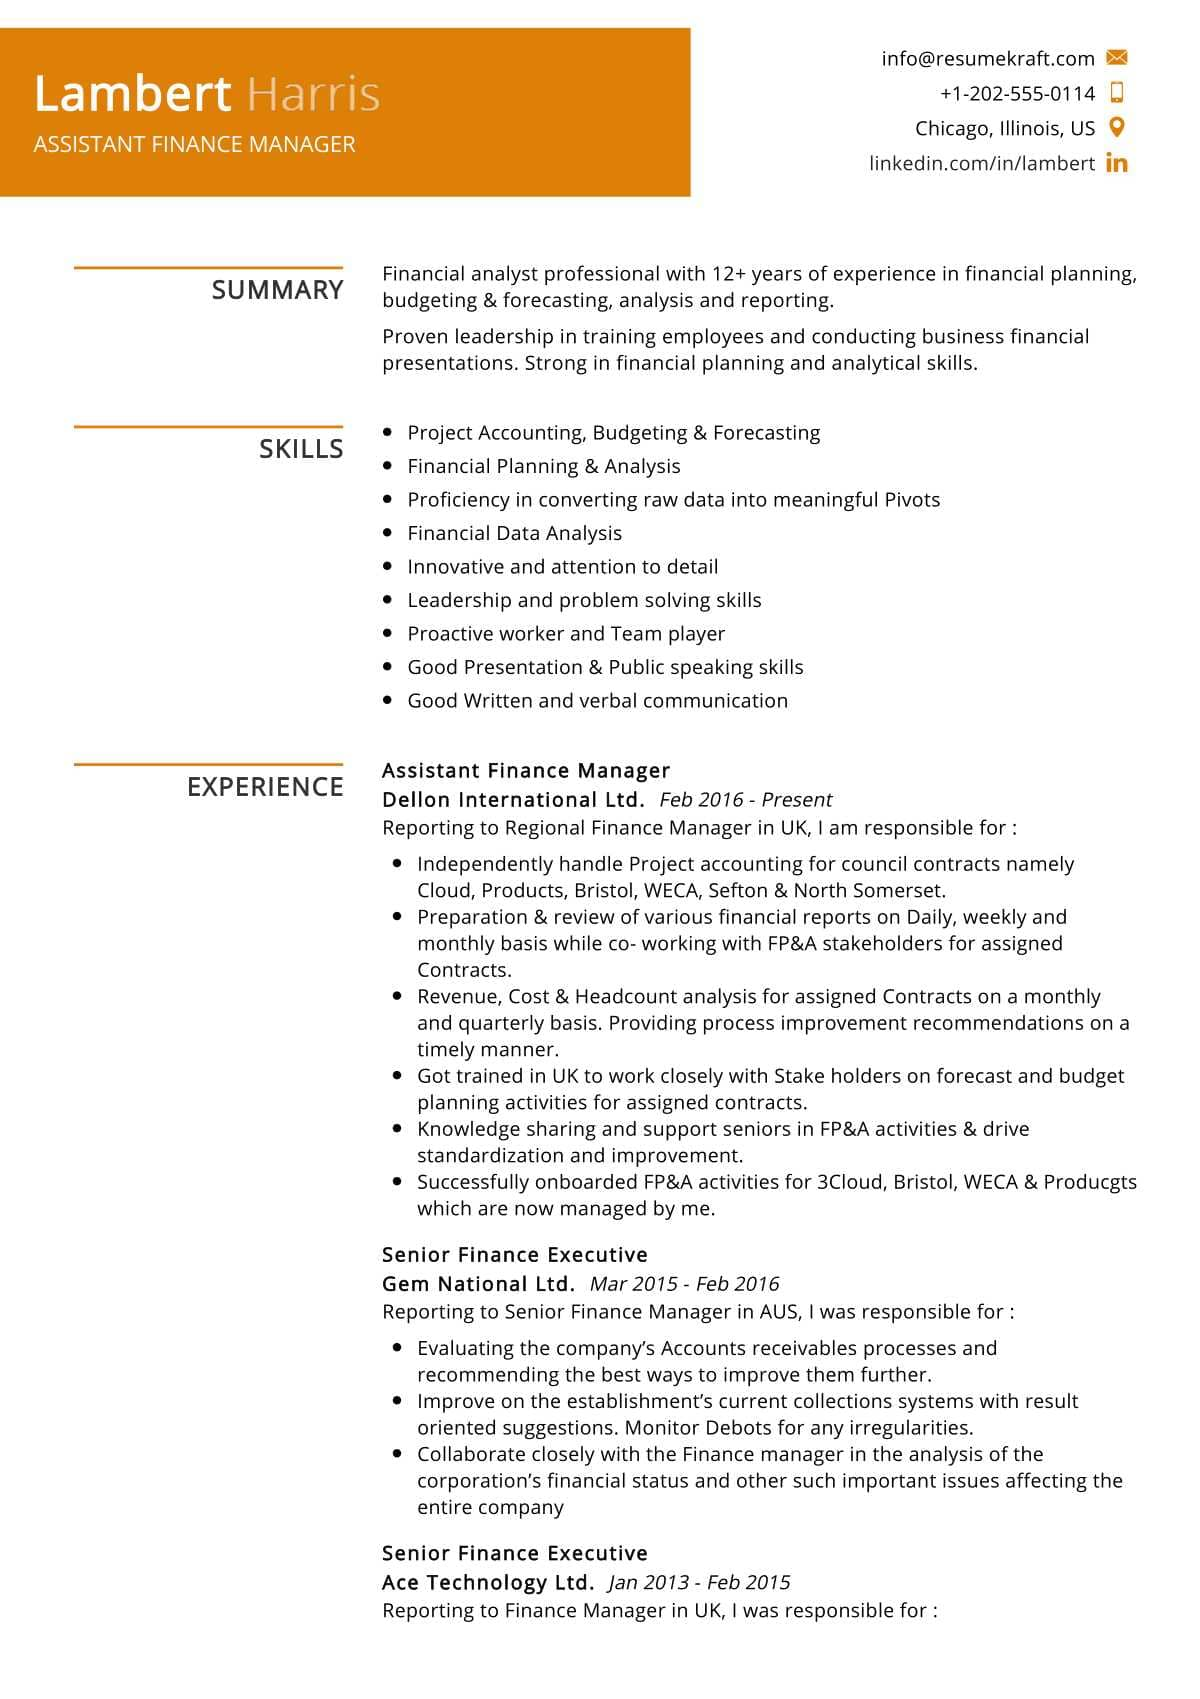 Assistant Finance Manager Resume